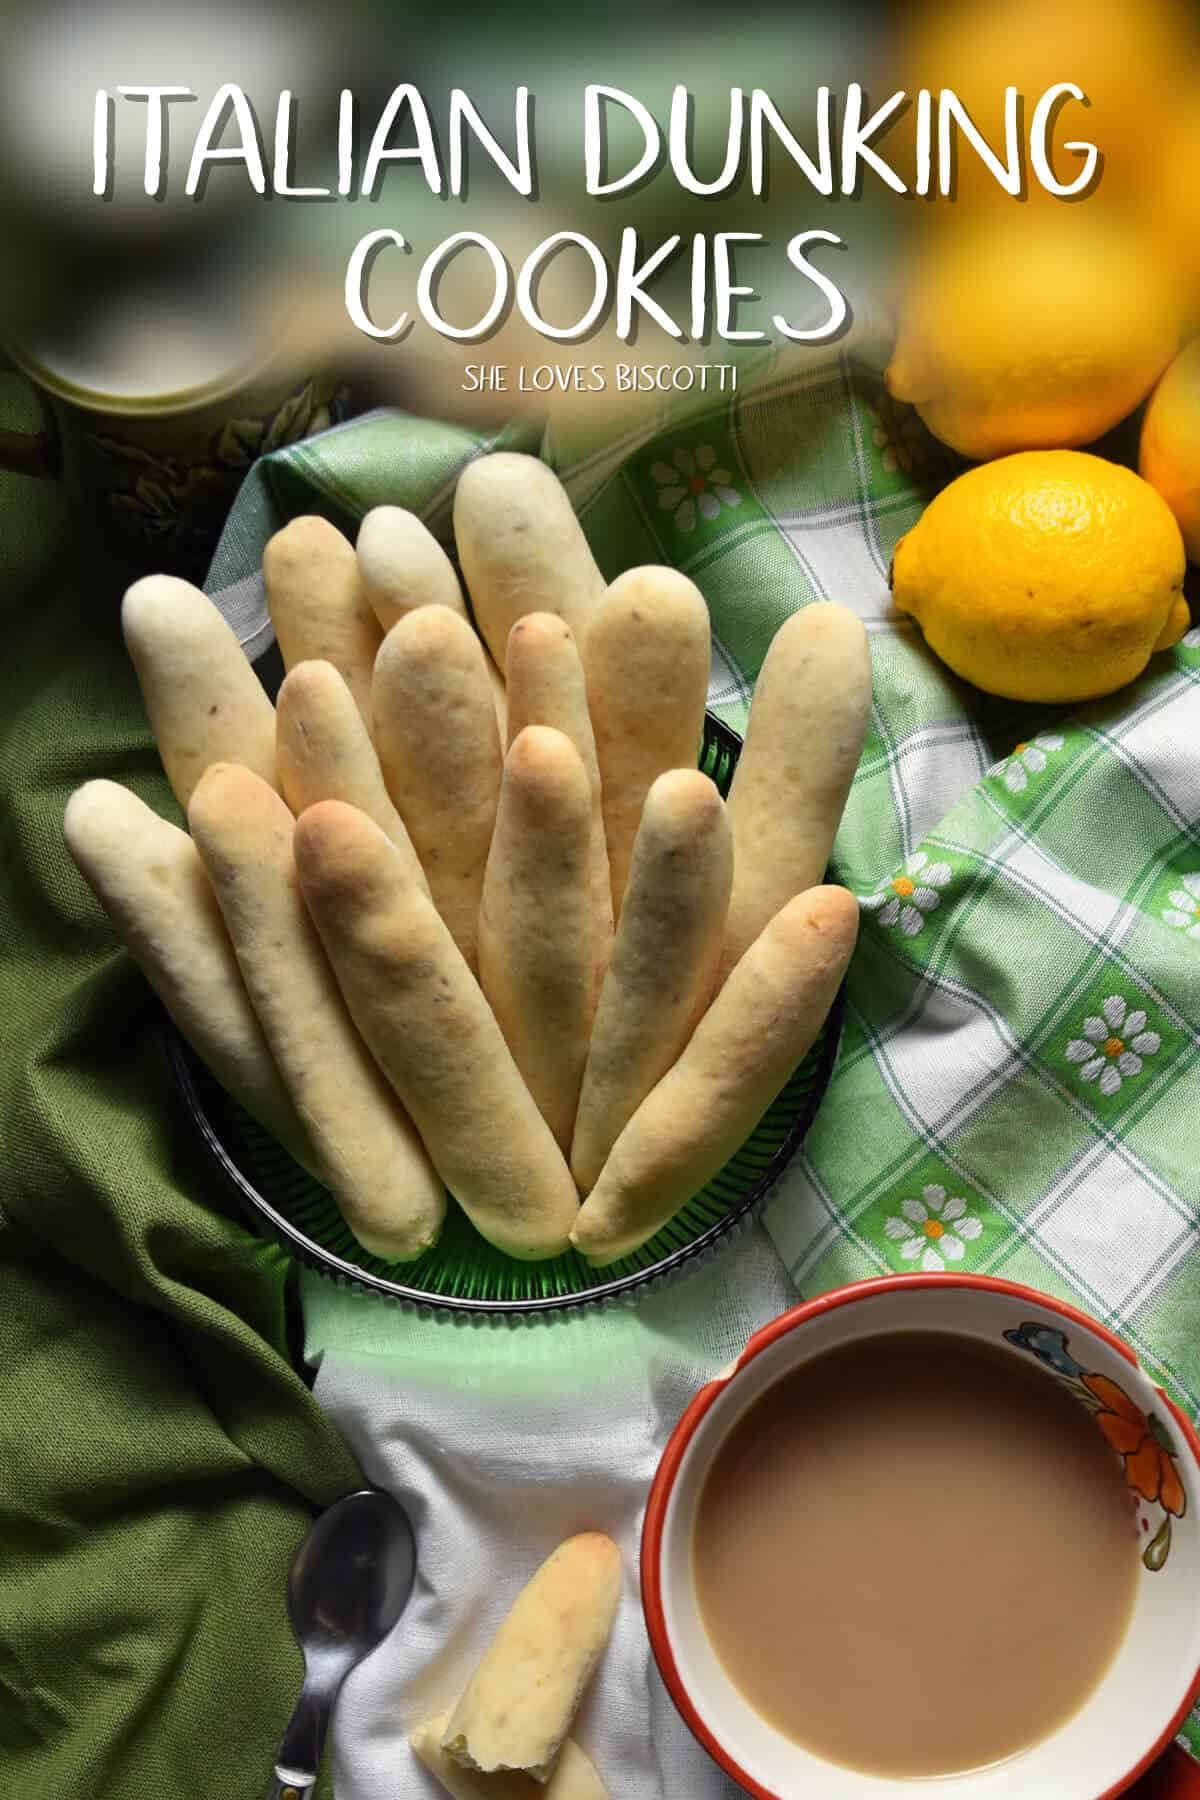 Italian Dunking Cookies || Anise dunking cookies || Breakfast cookies #dunkingcookies #italianbreakfastcookies #cookies #morningcookies #Italiancookies